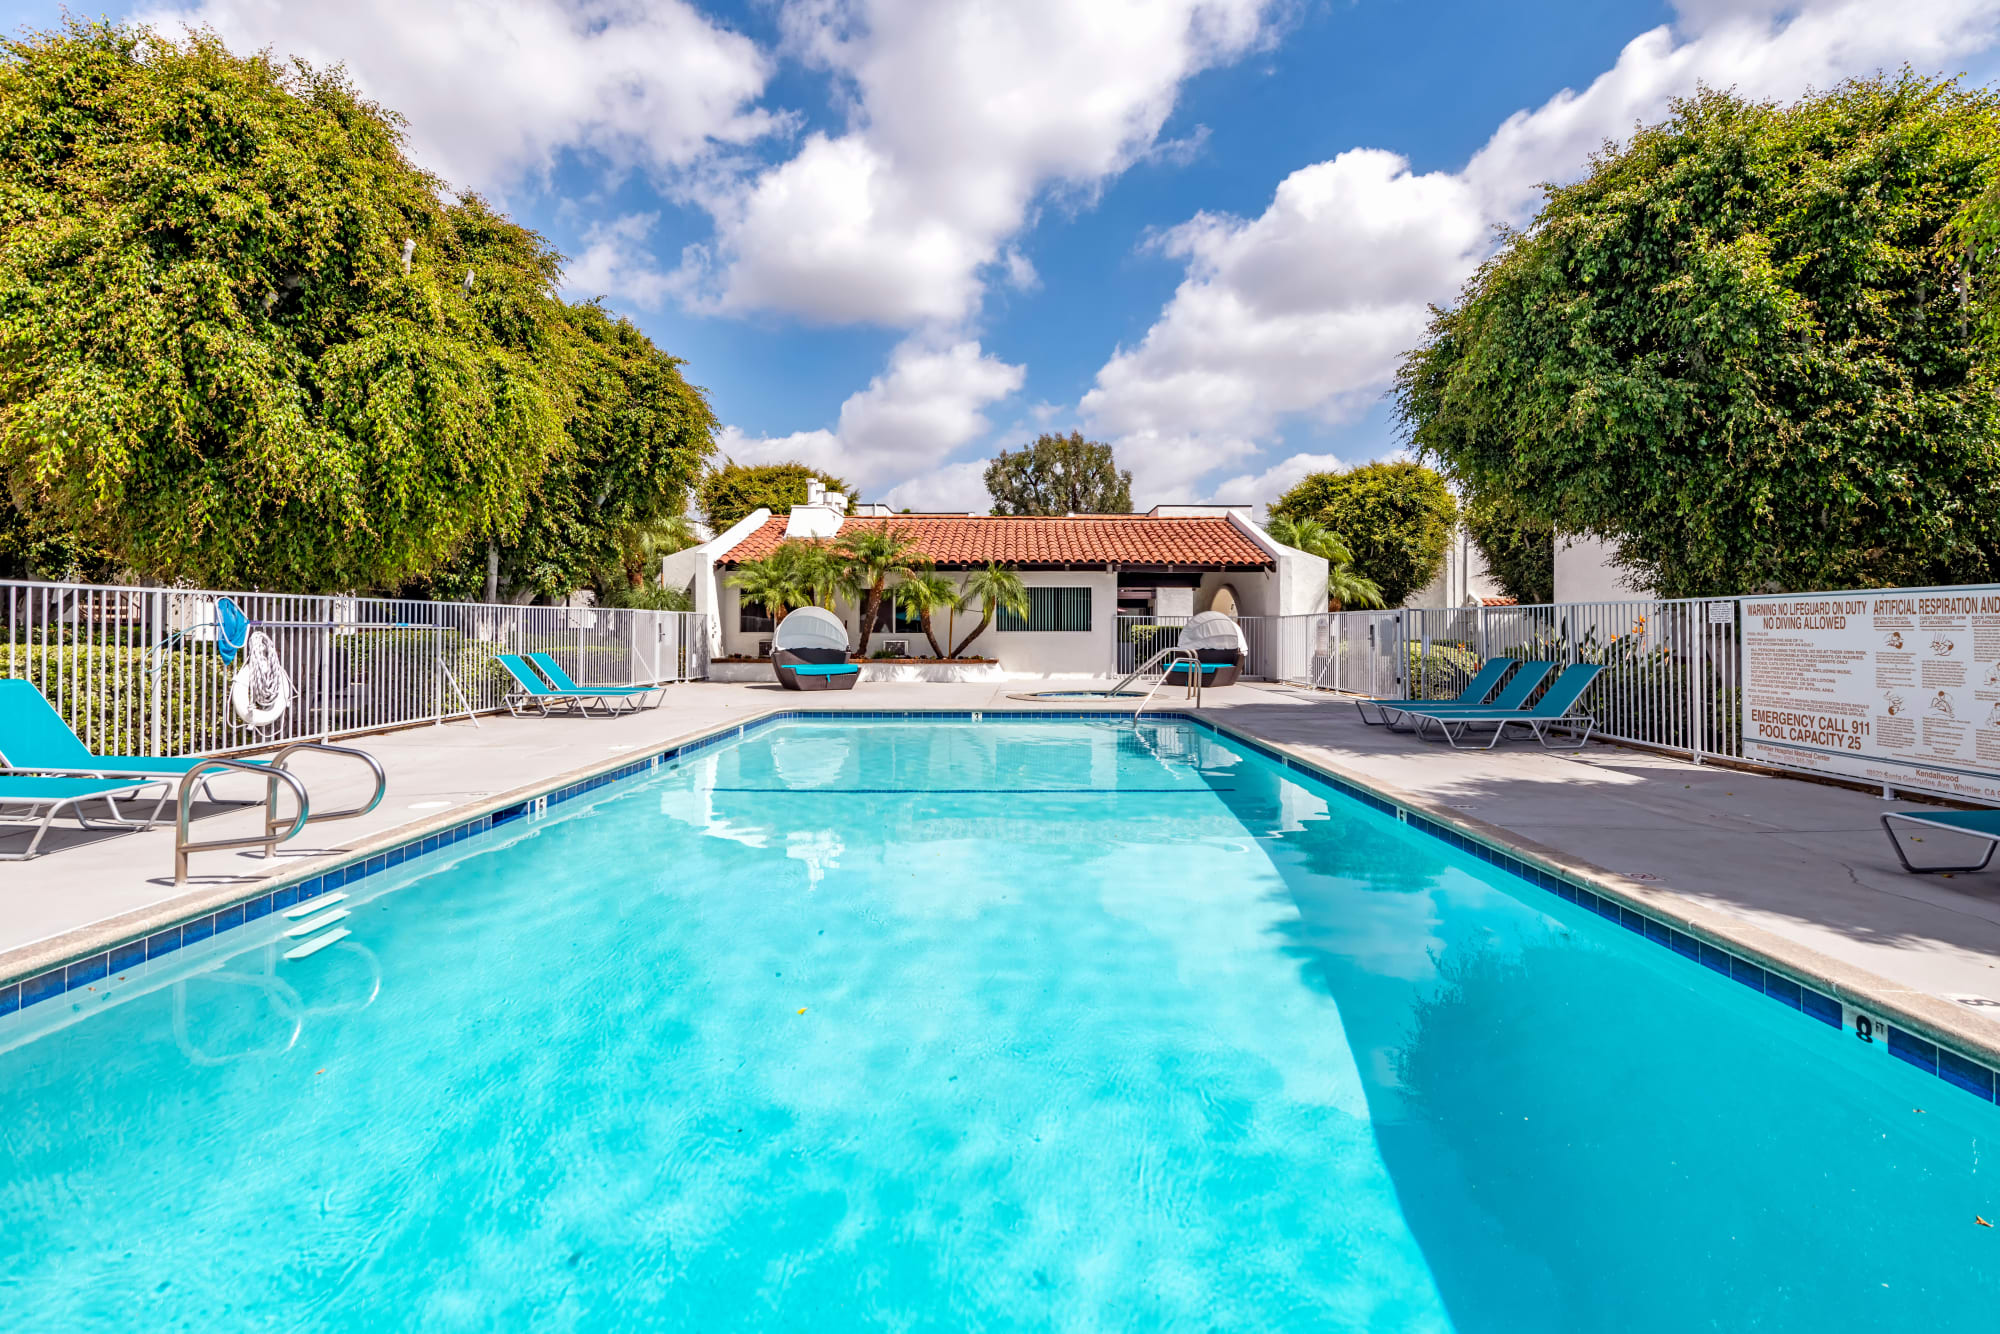 The sparkling swimming pool on a sunny day at Kendallwood Apartments in Whittier, California